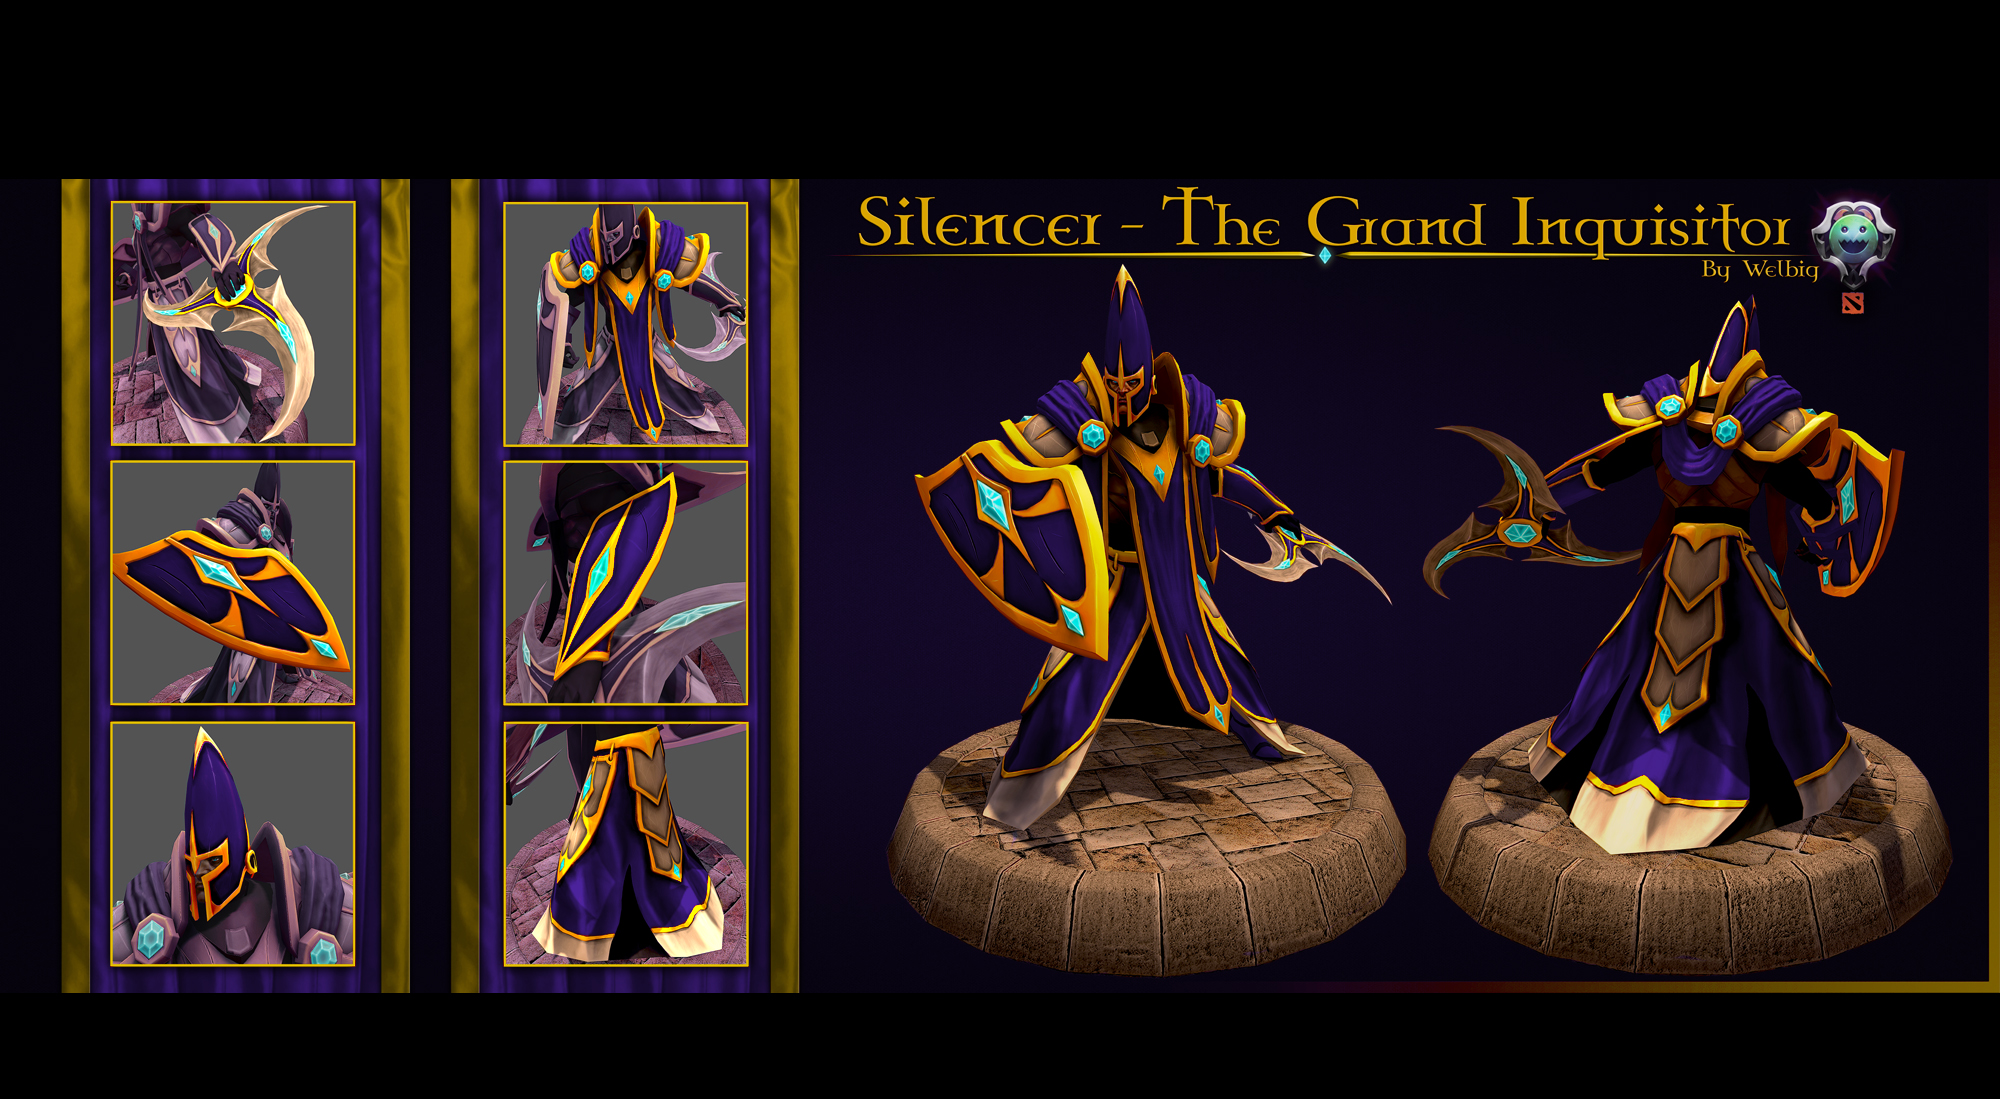 steam workshop silencer the grand inquisitor